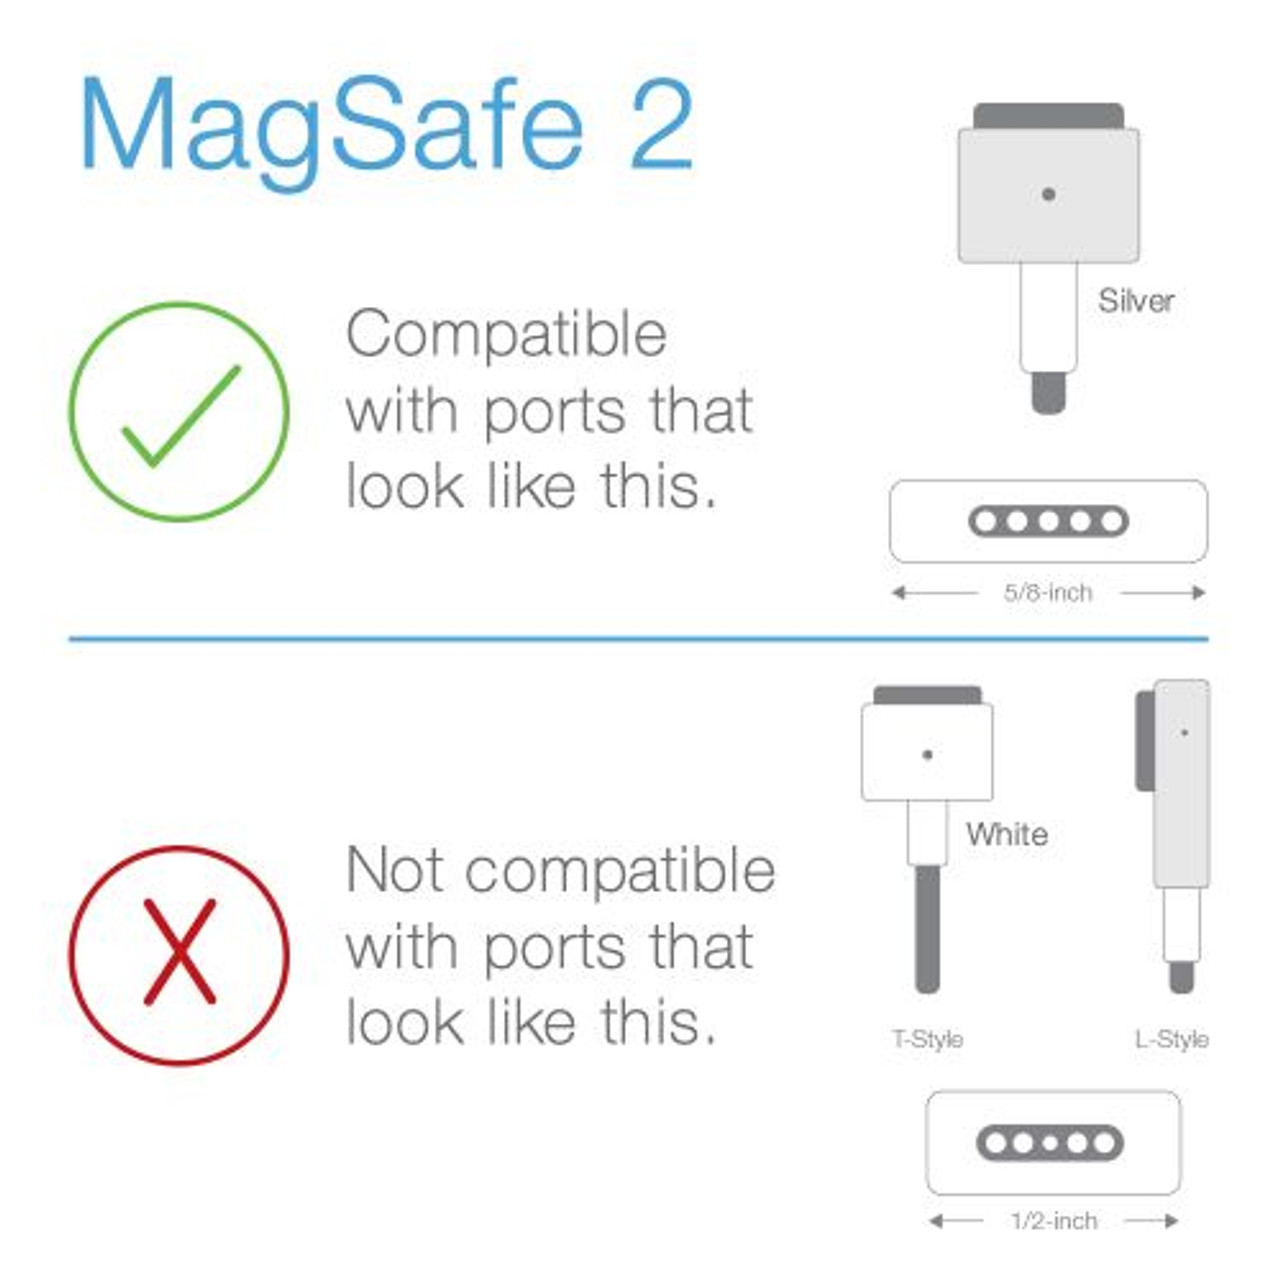 MagSafe 2 connector compatibility chart